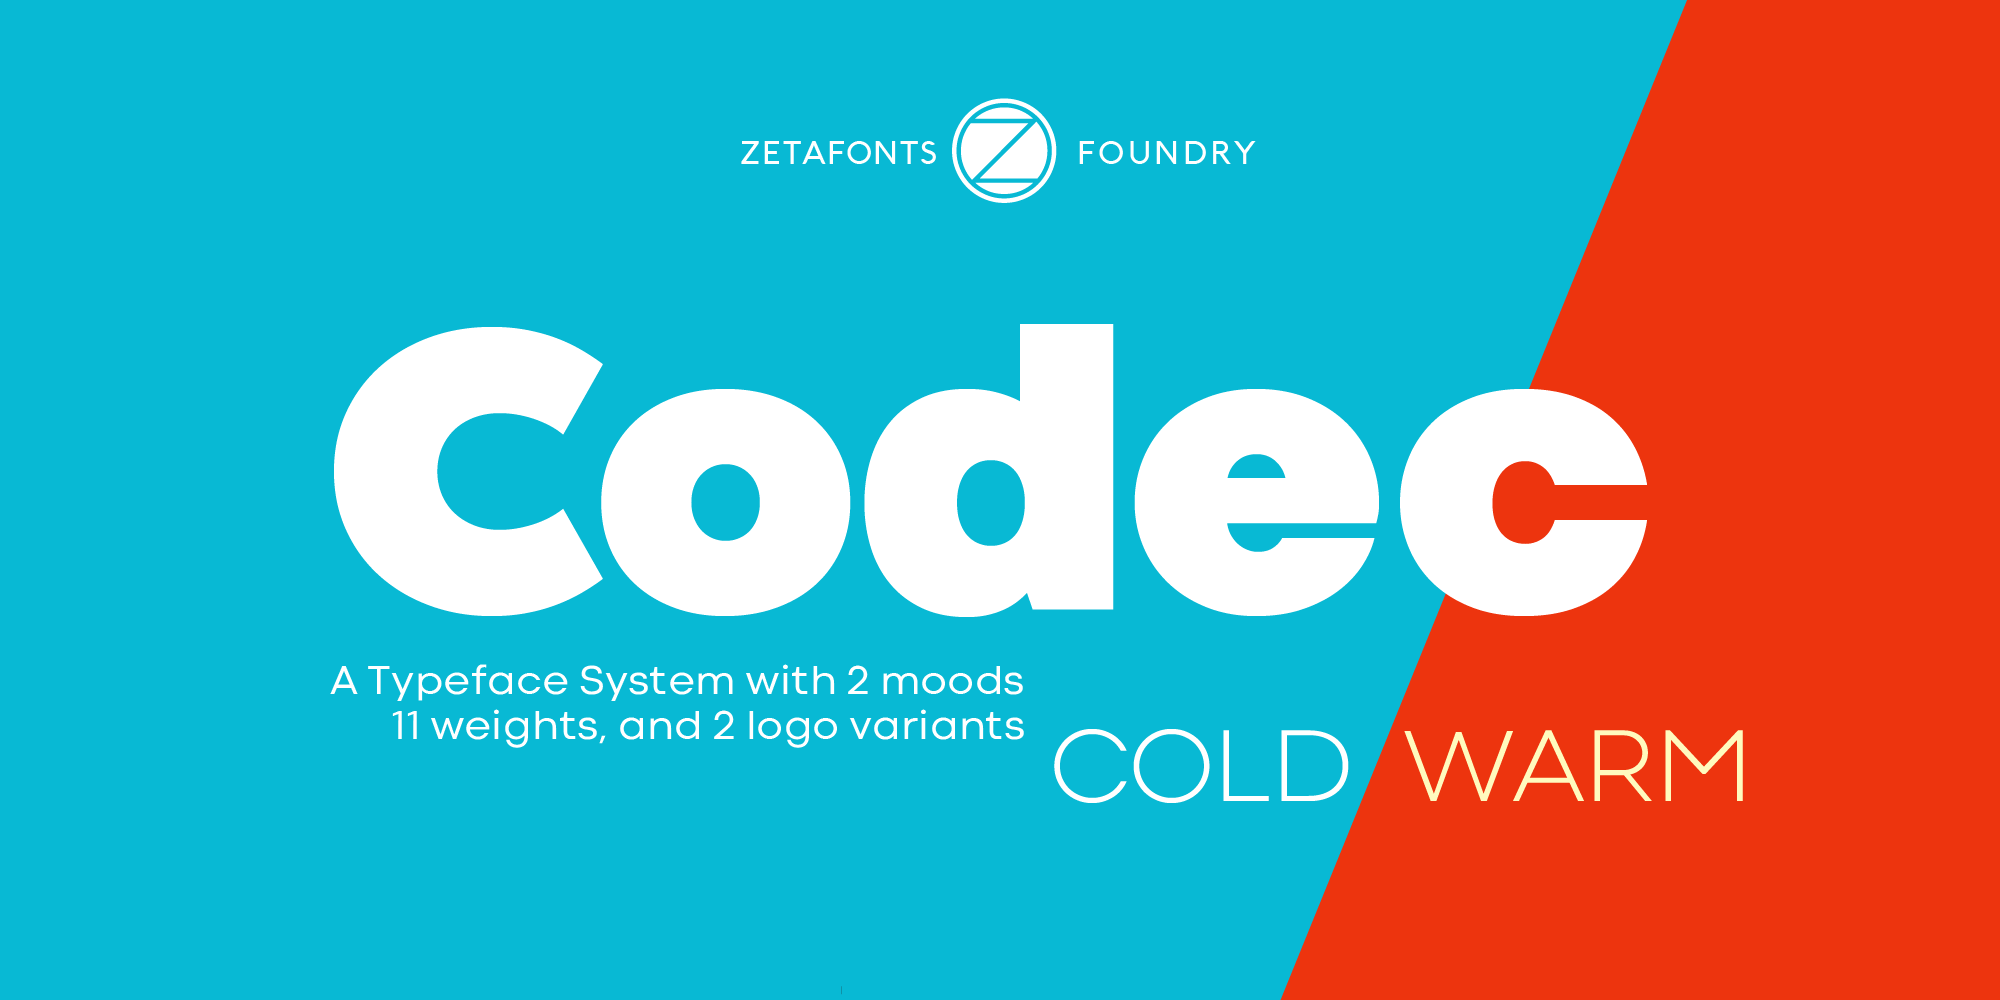 Codec Warm Cold Typeface By Zetafonts